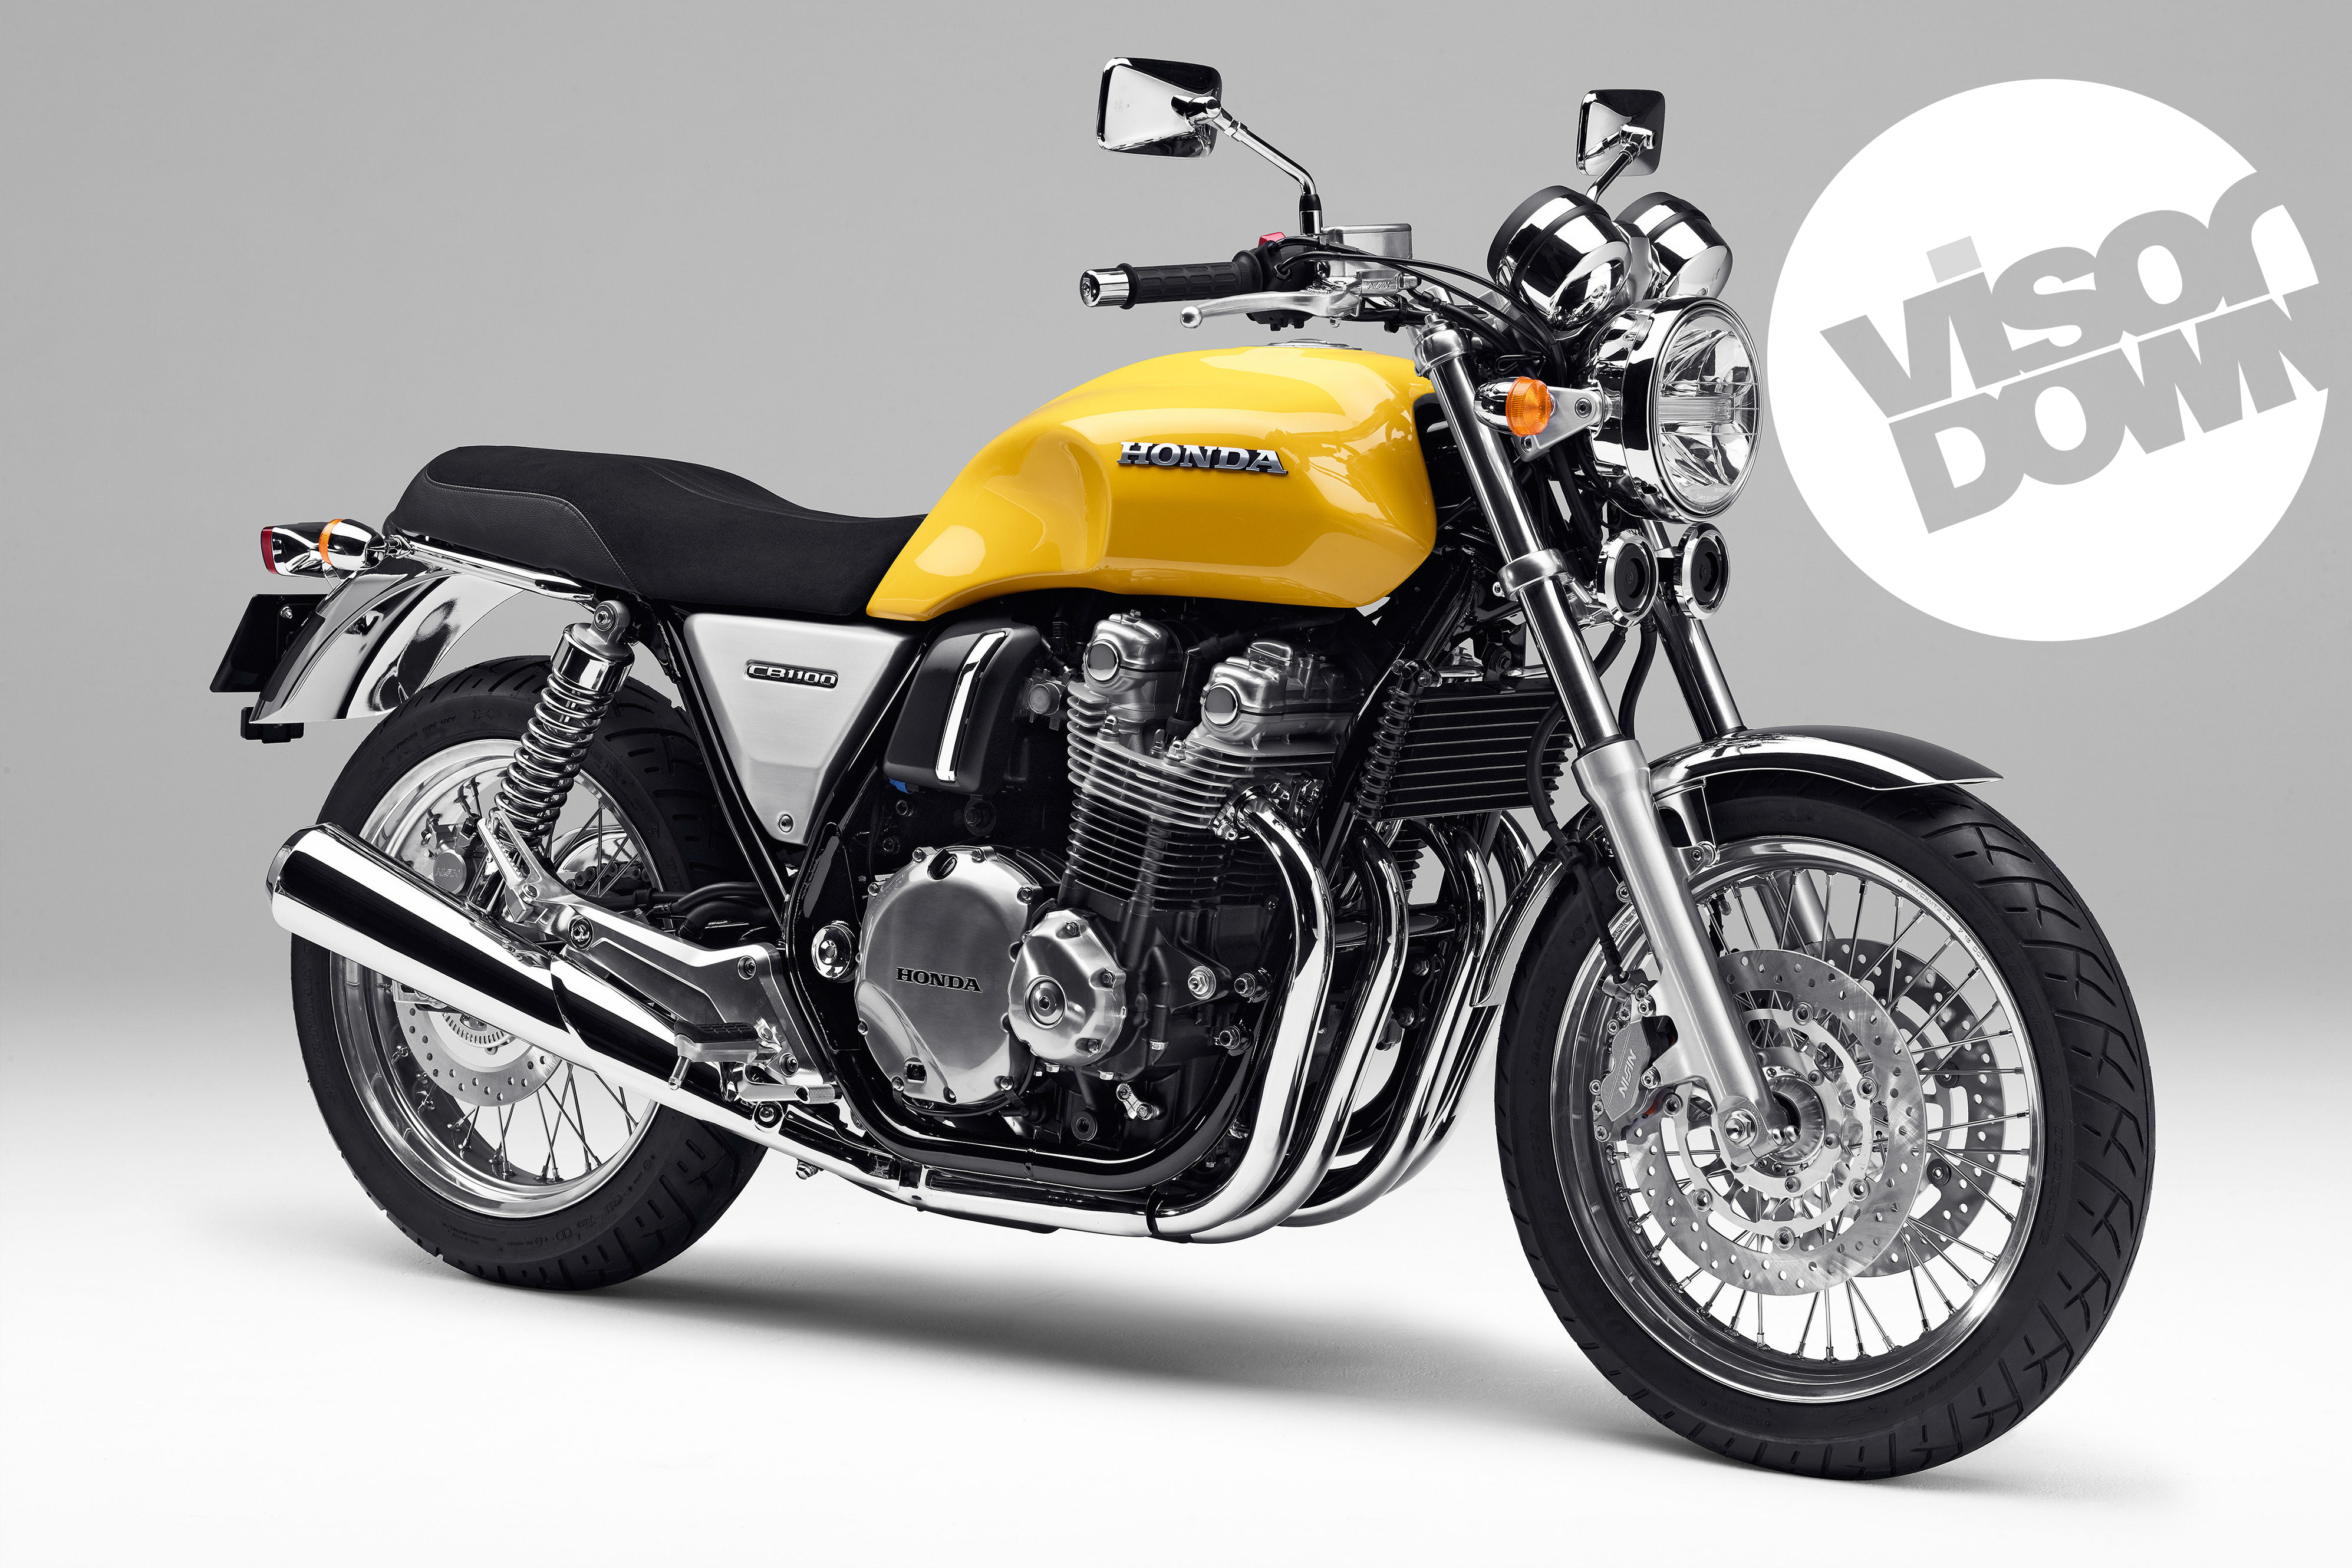 New Honda CB1100 to be previewed